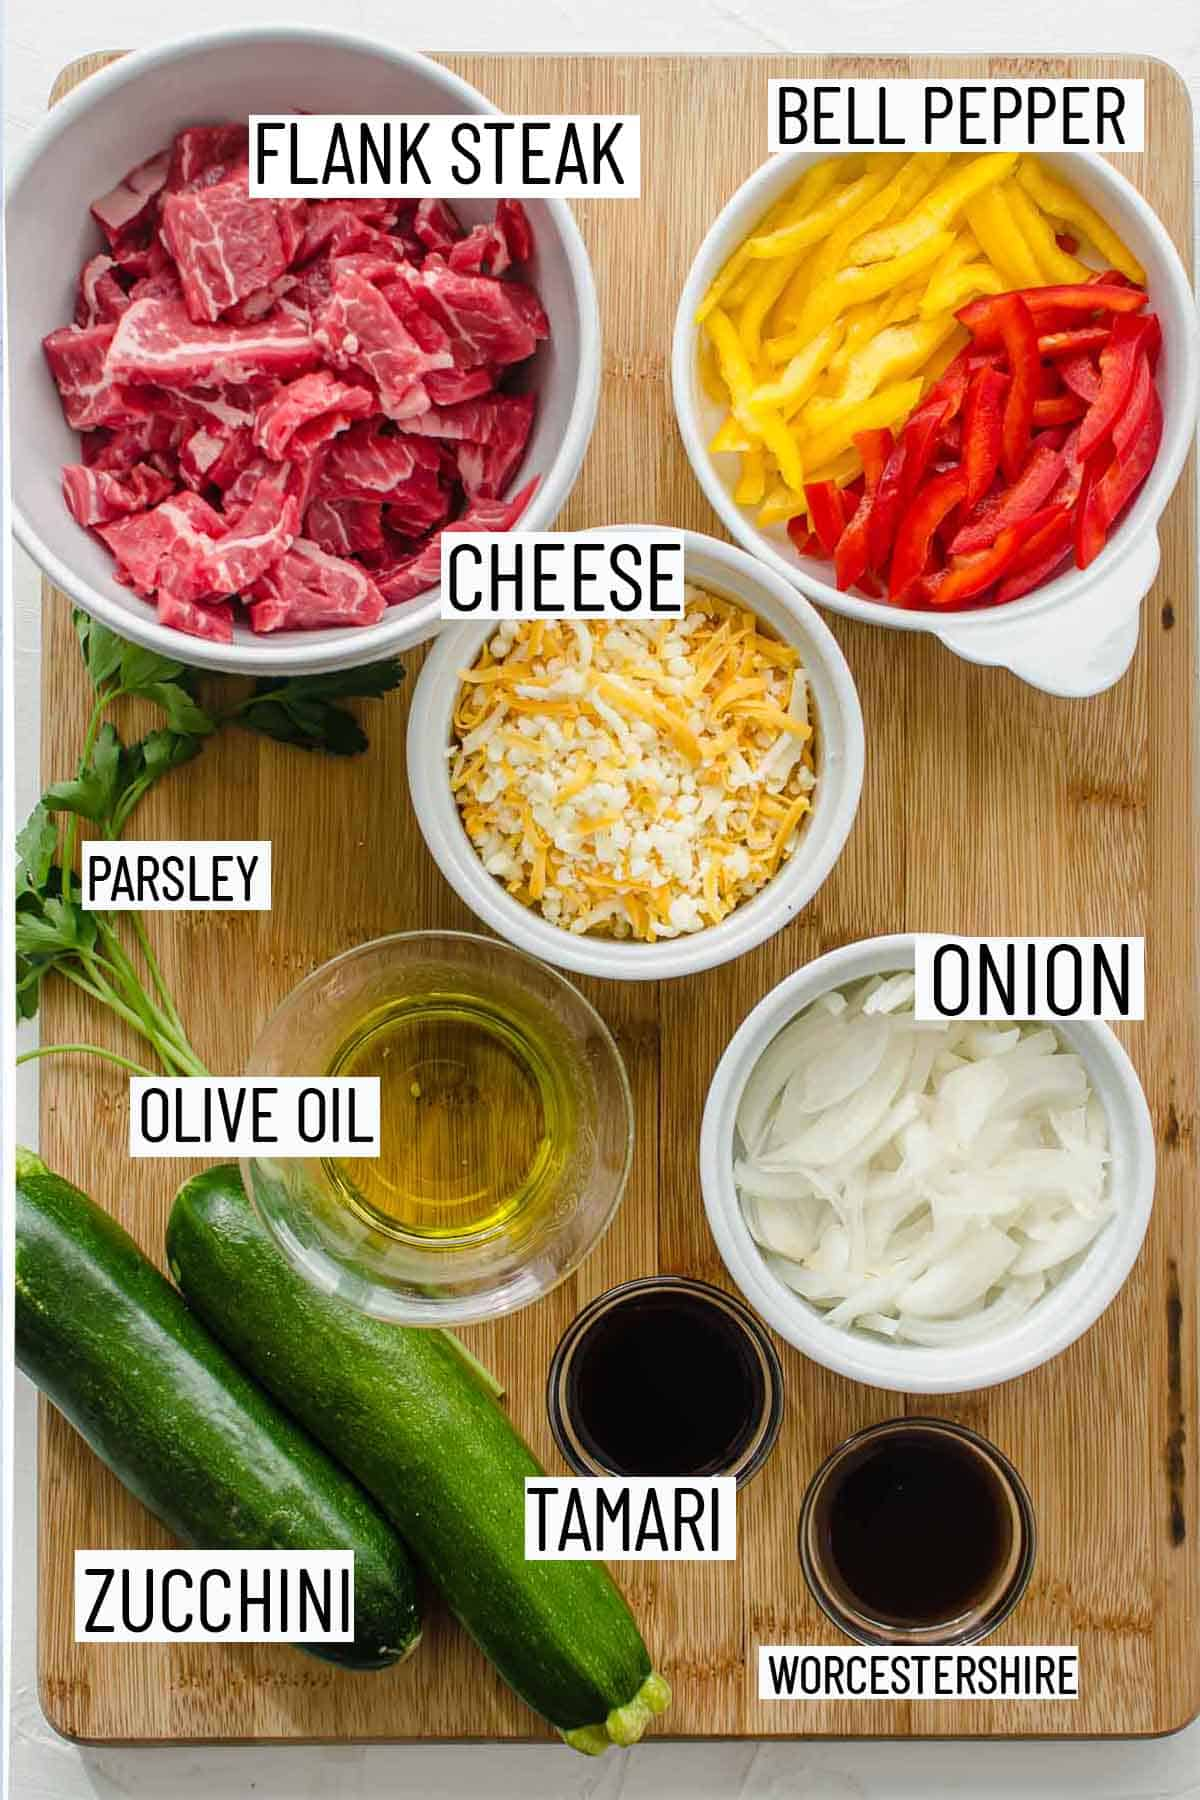 Flat lay of portioned ingredients for zucchini boats including steak, bell pepper, cheese, parsley, onion, olive oil, zucchini, tamari and worestershire sauce.